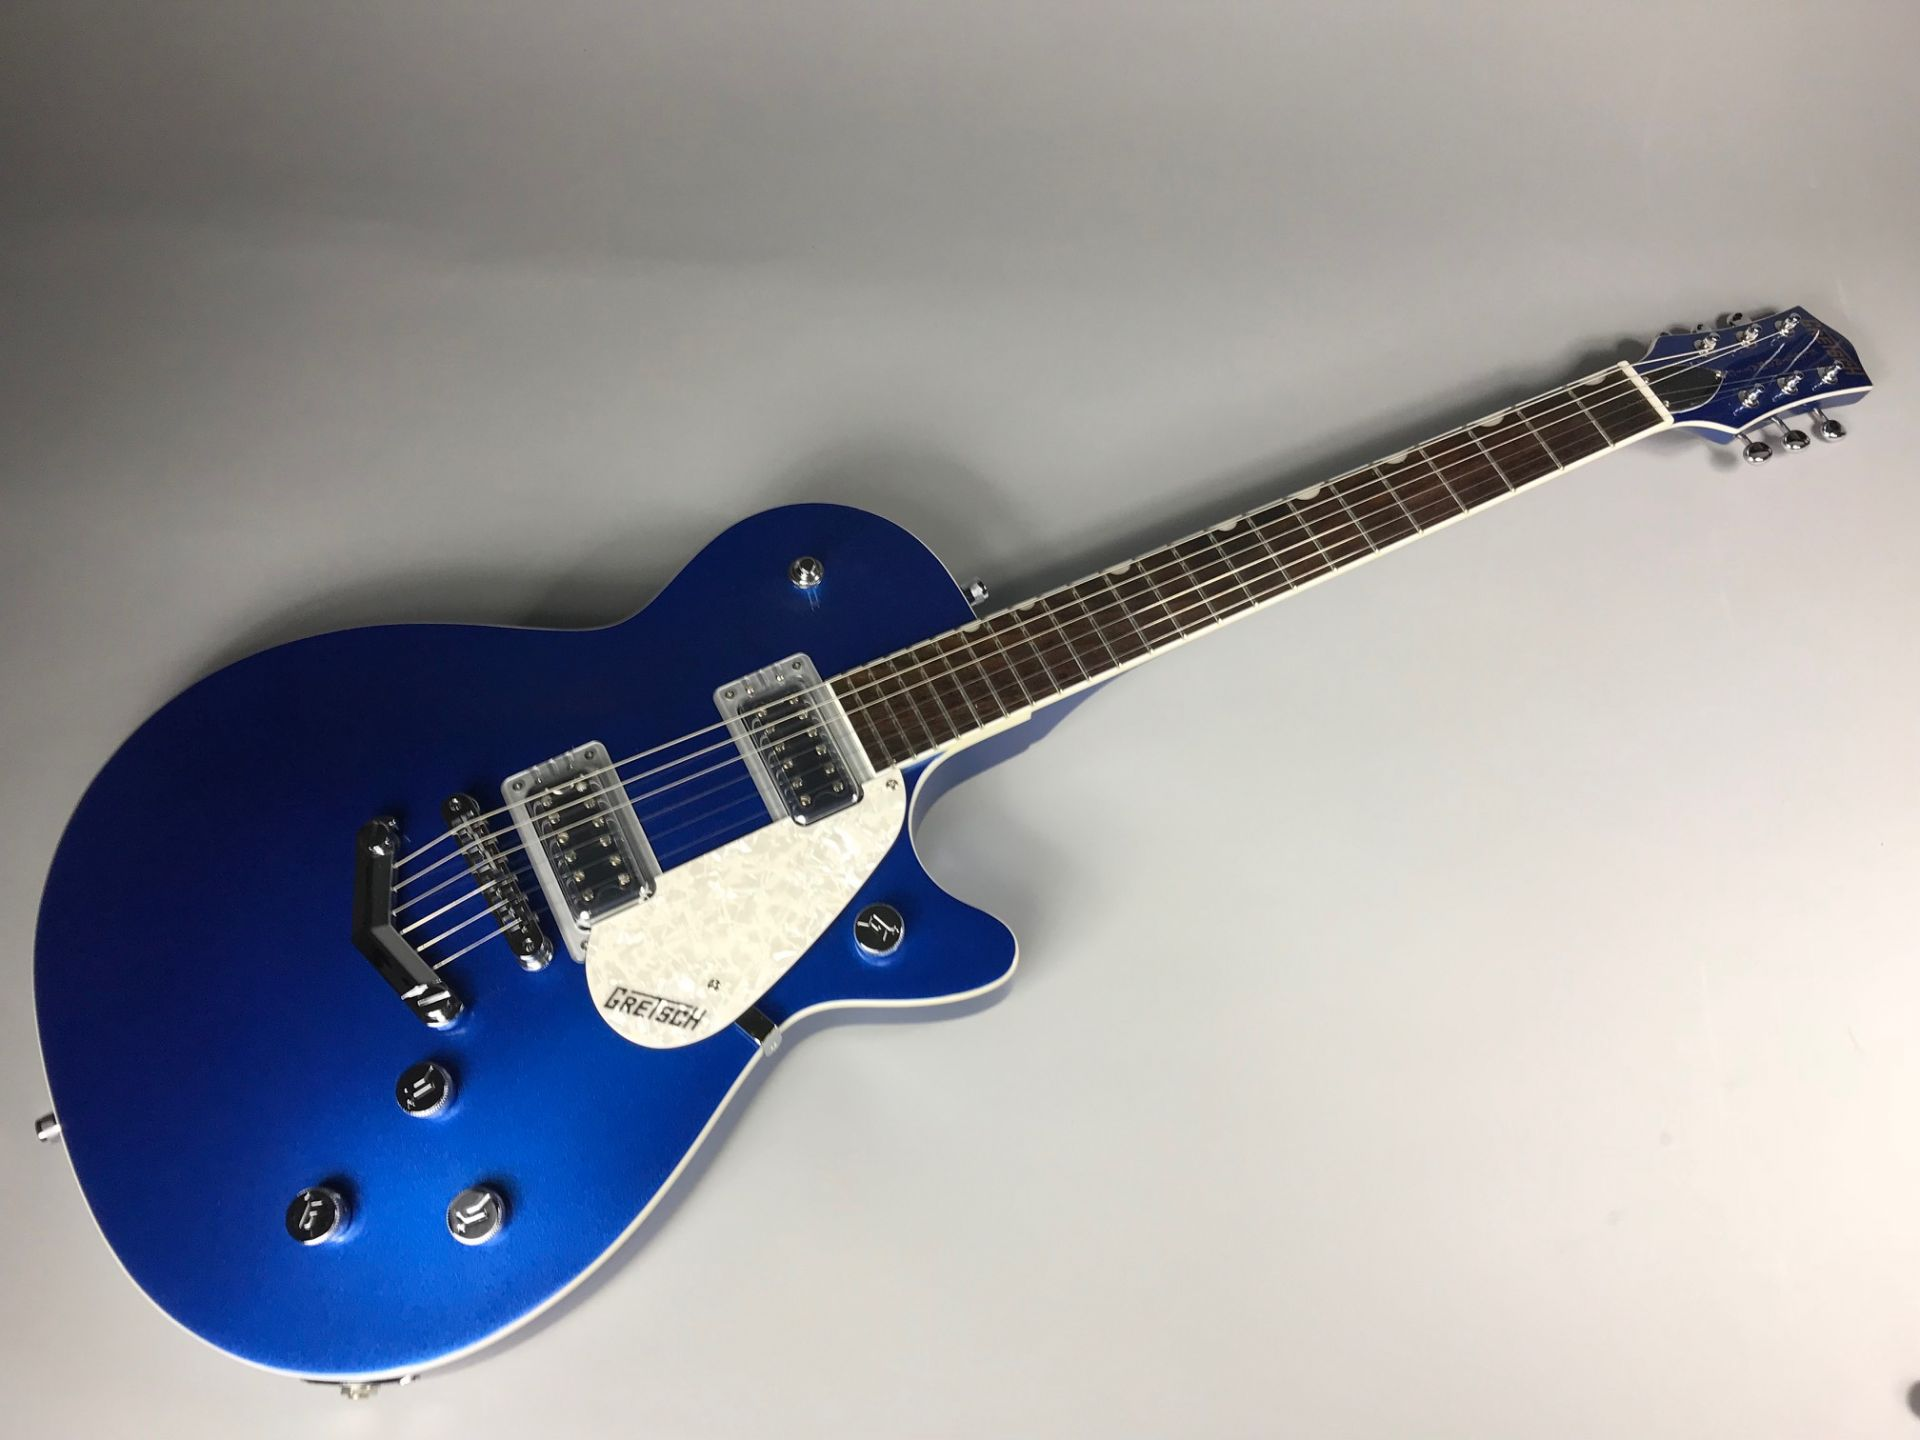 G5435 Limited Edition Electromatic Pro Jet™のボディトップ-アップ画像